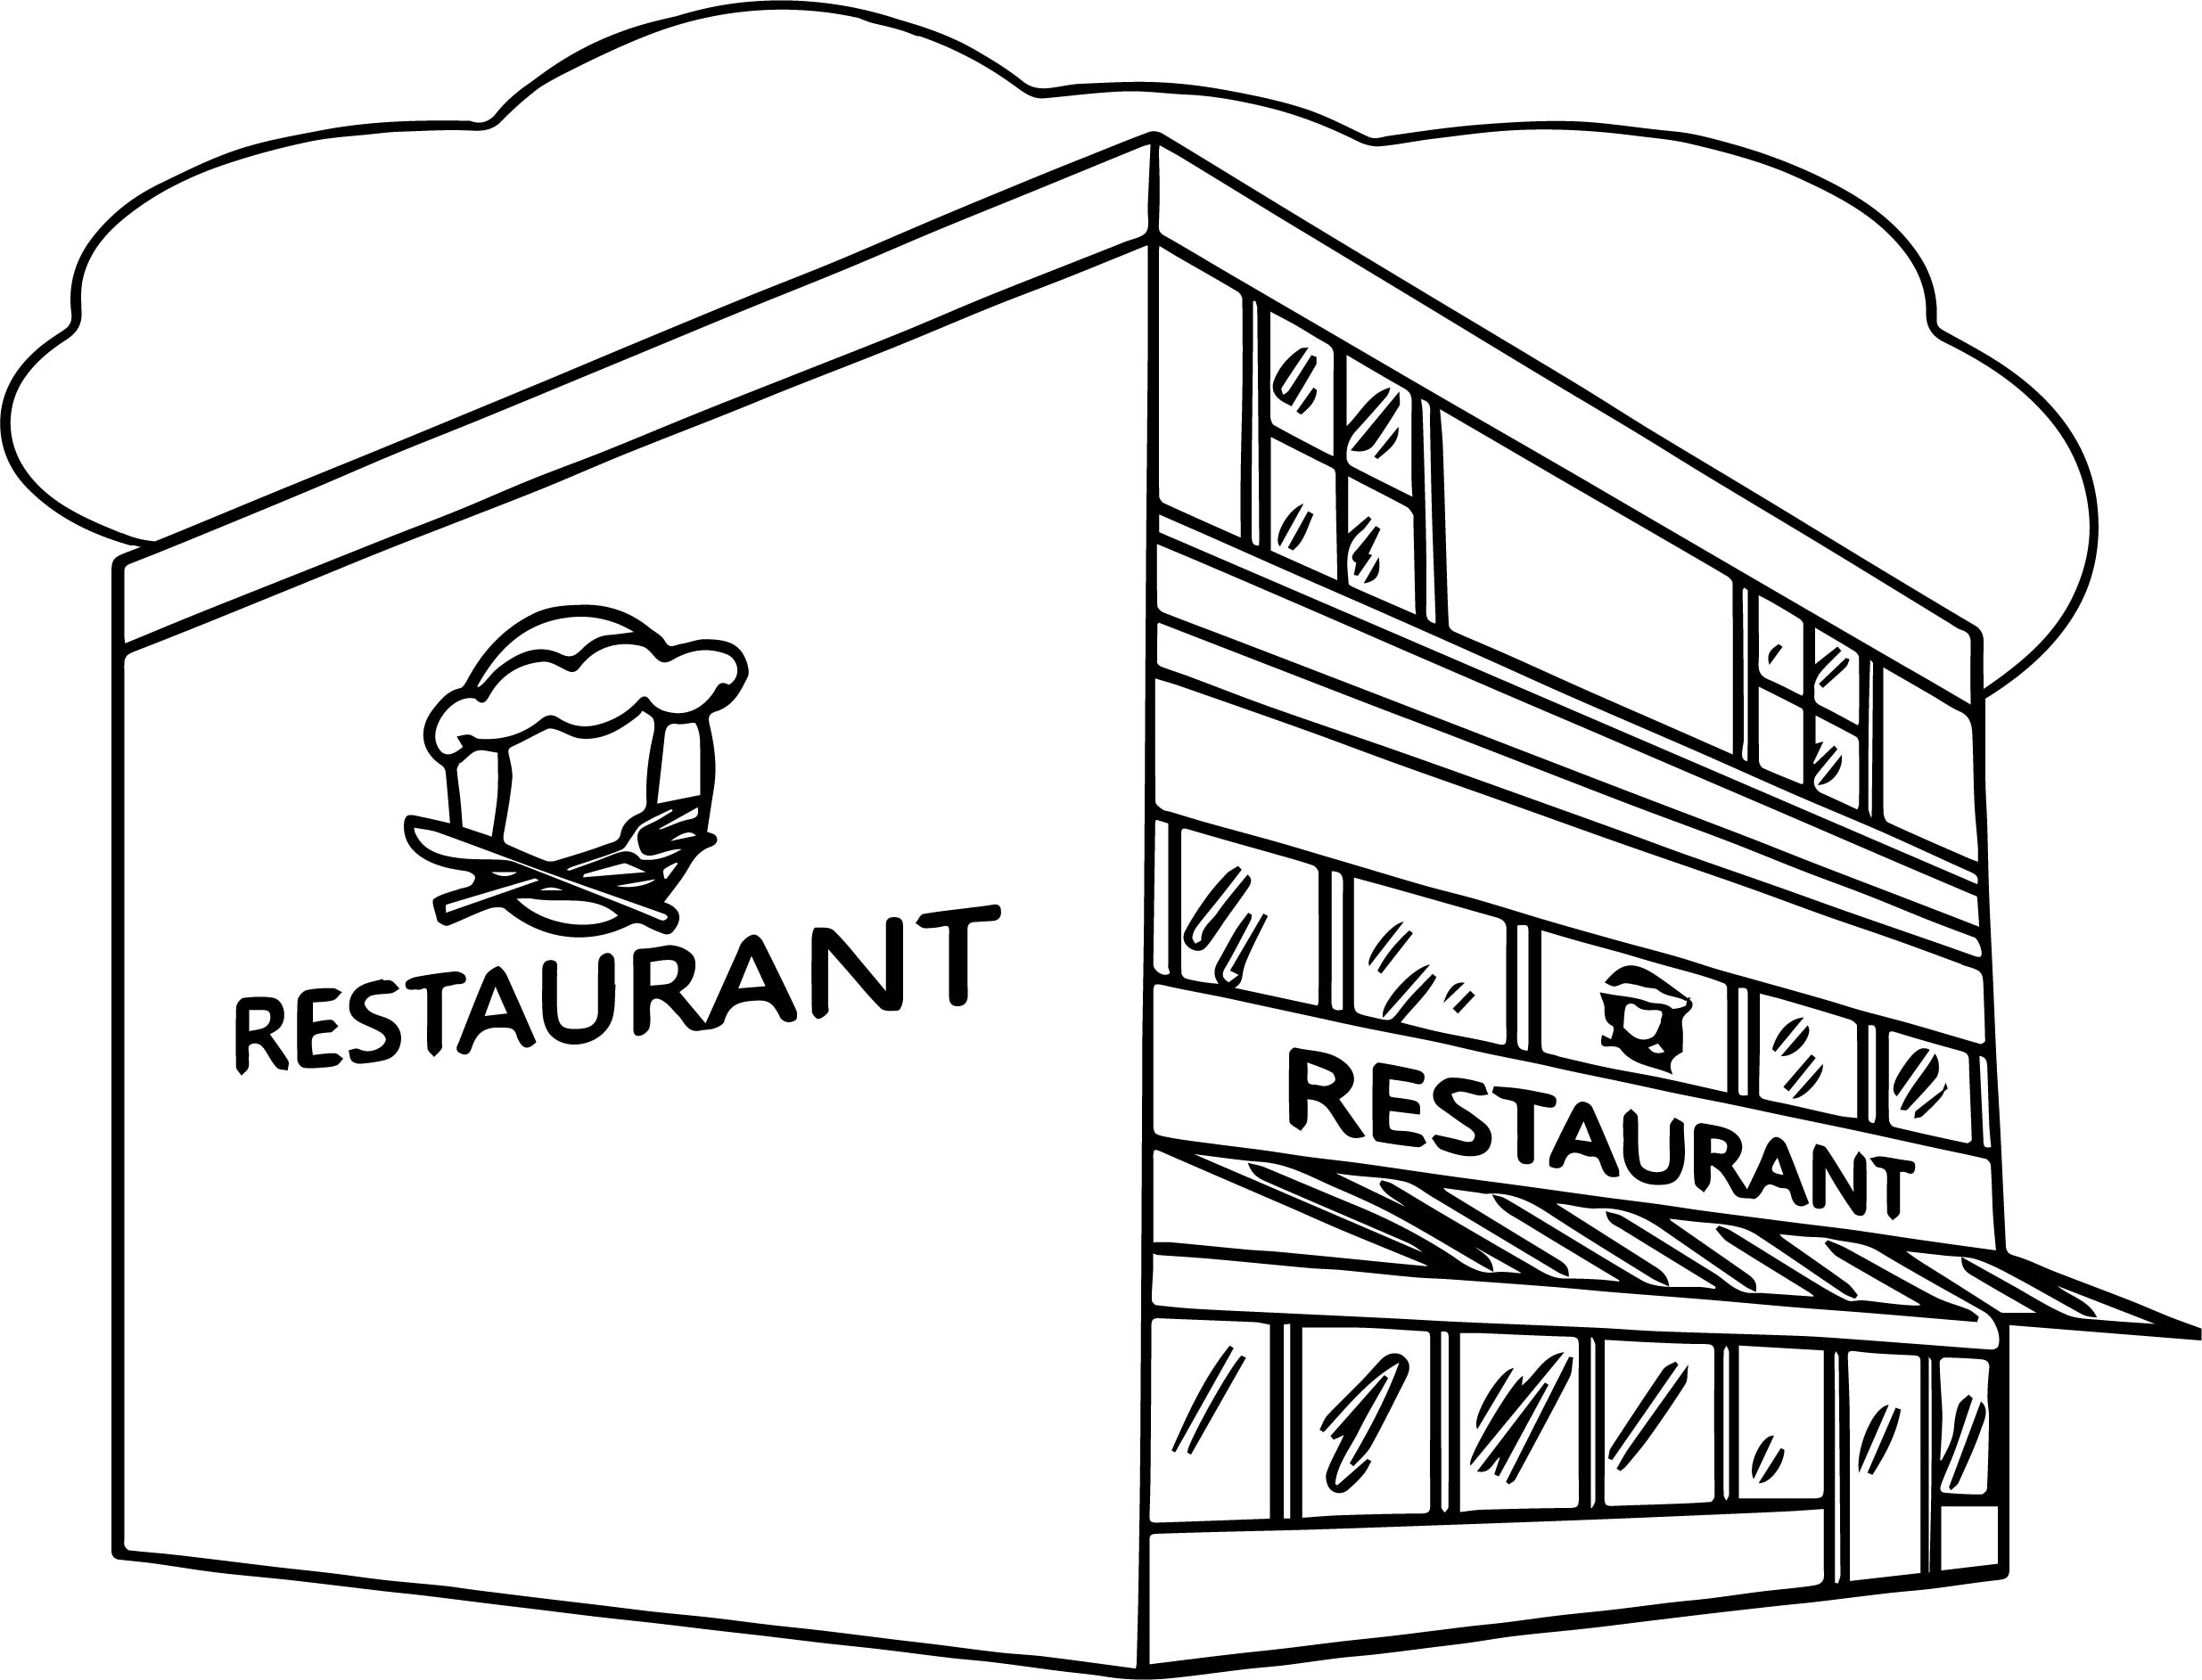 Restaurant Building Clipart Black And White.